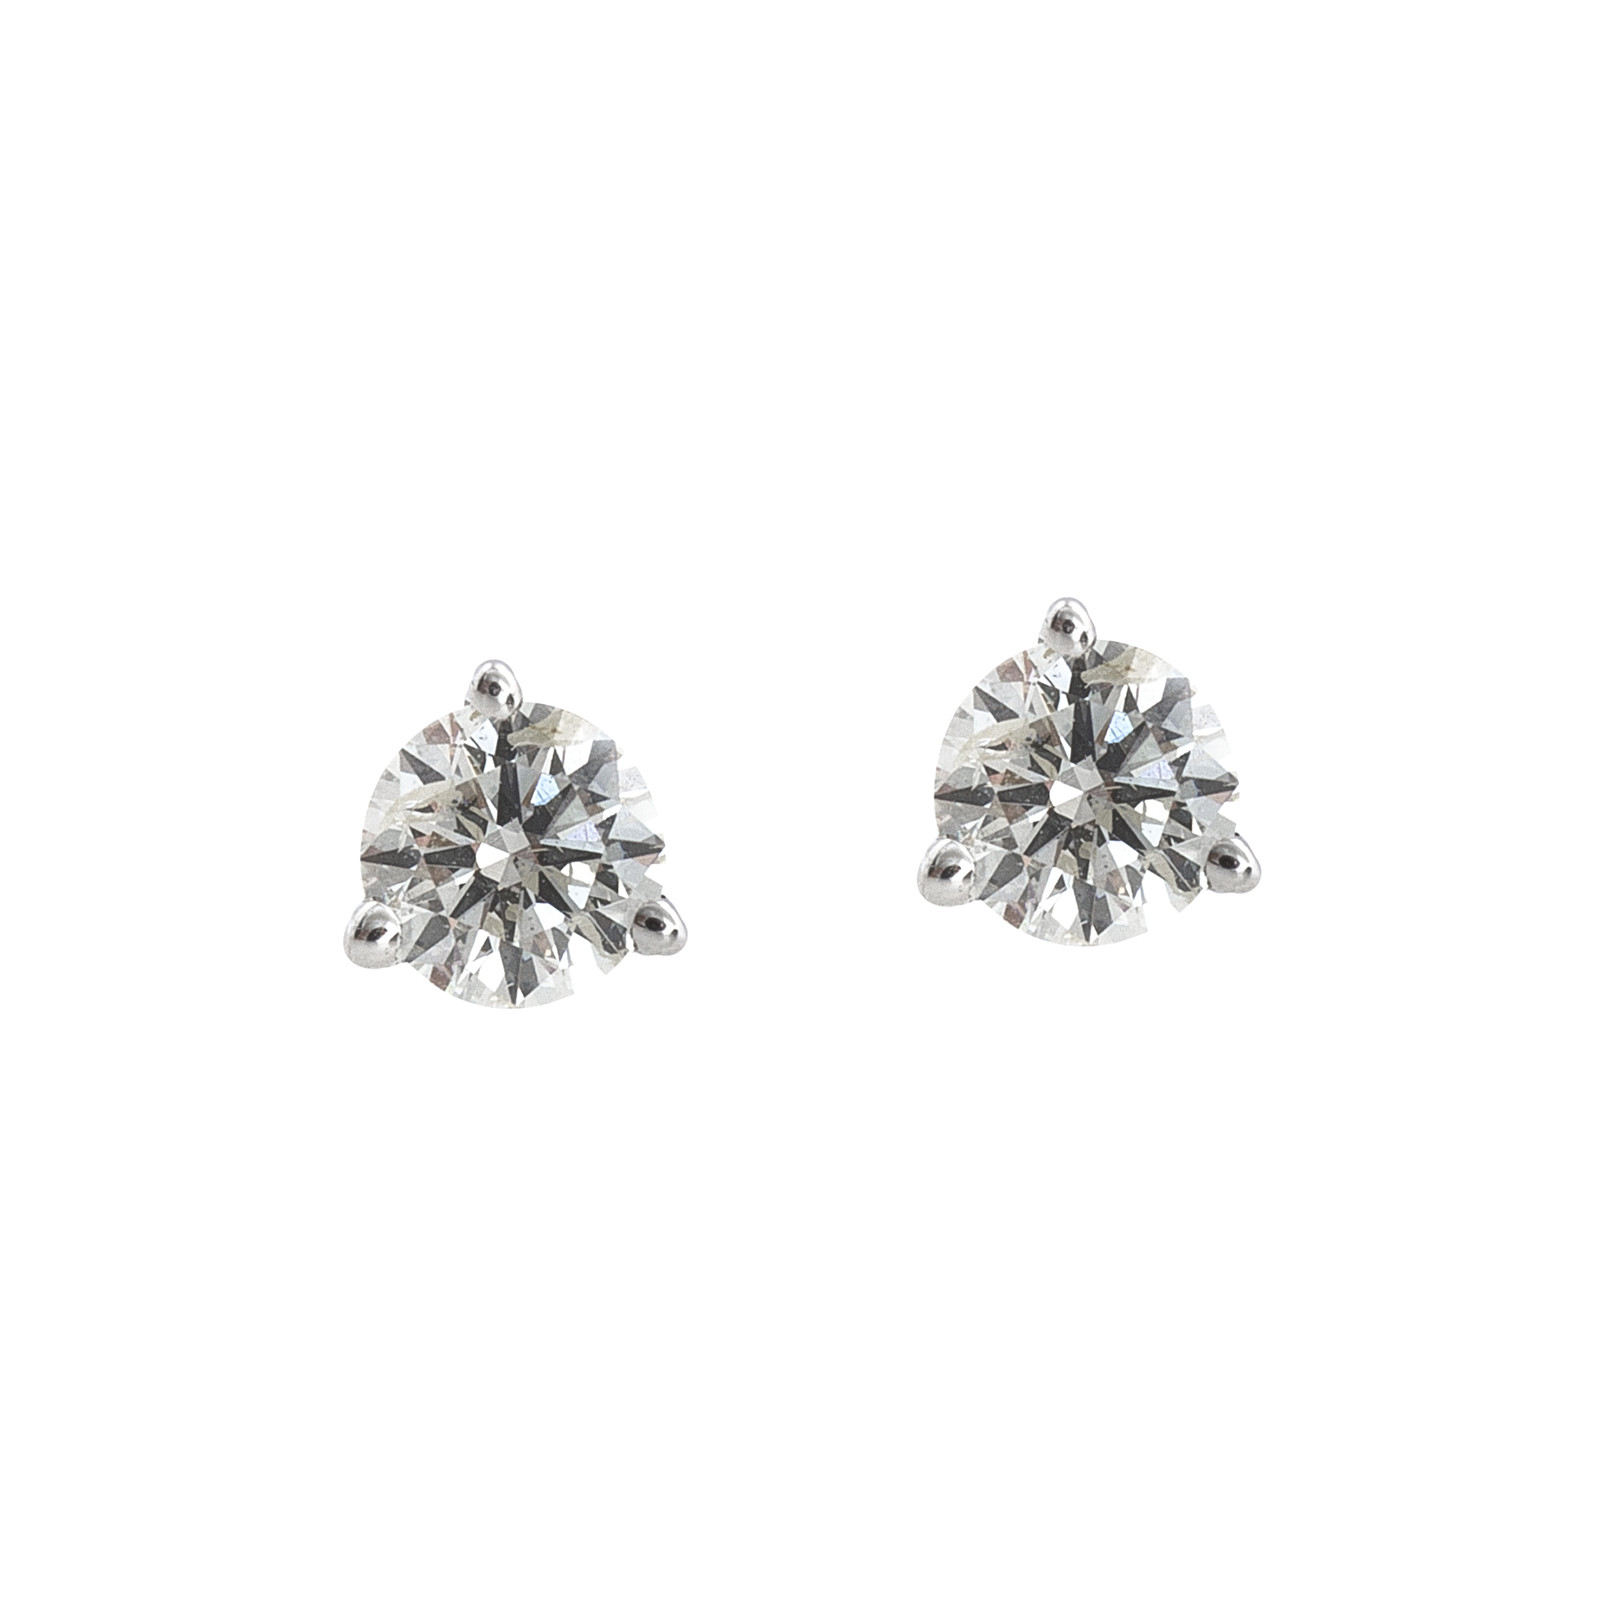 Vintage Roberto Coin 0.54 CTW Diamond Stud Earrings